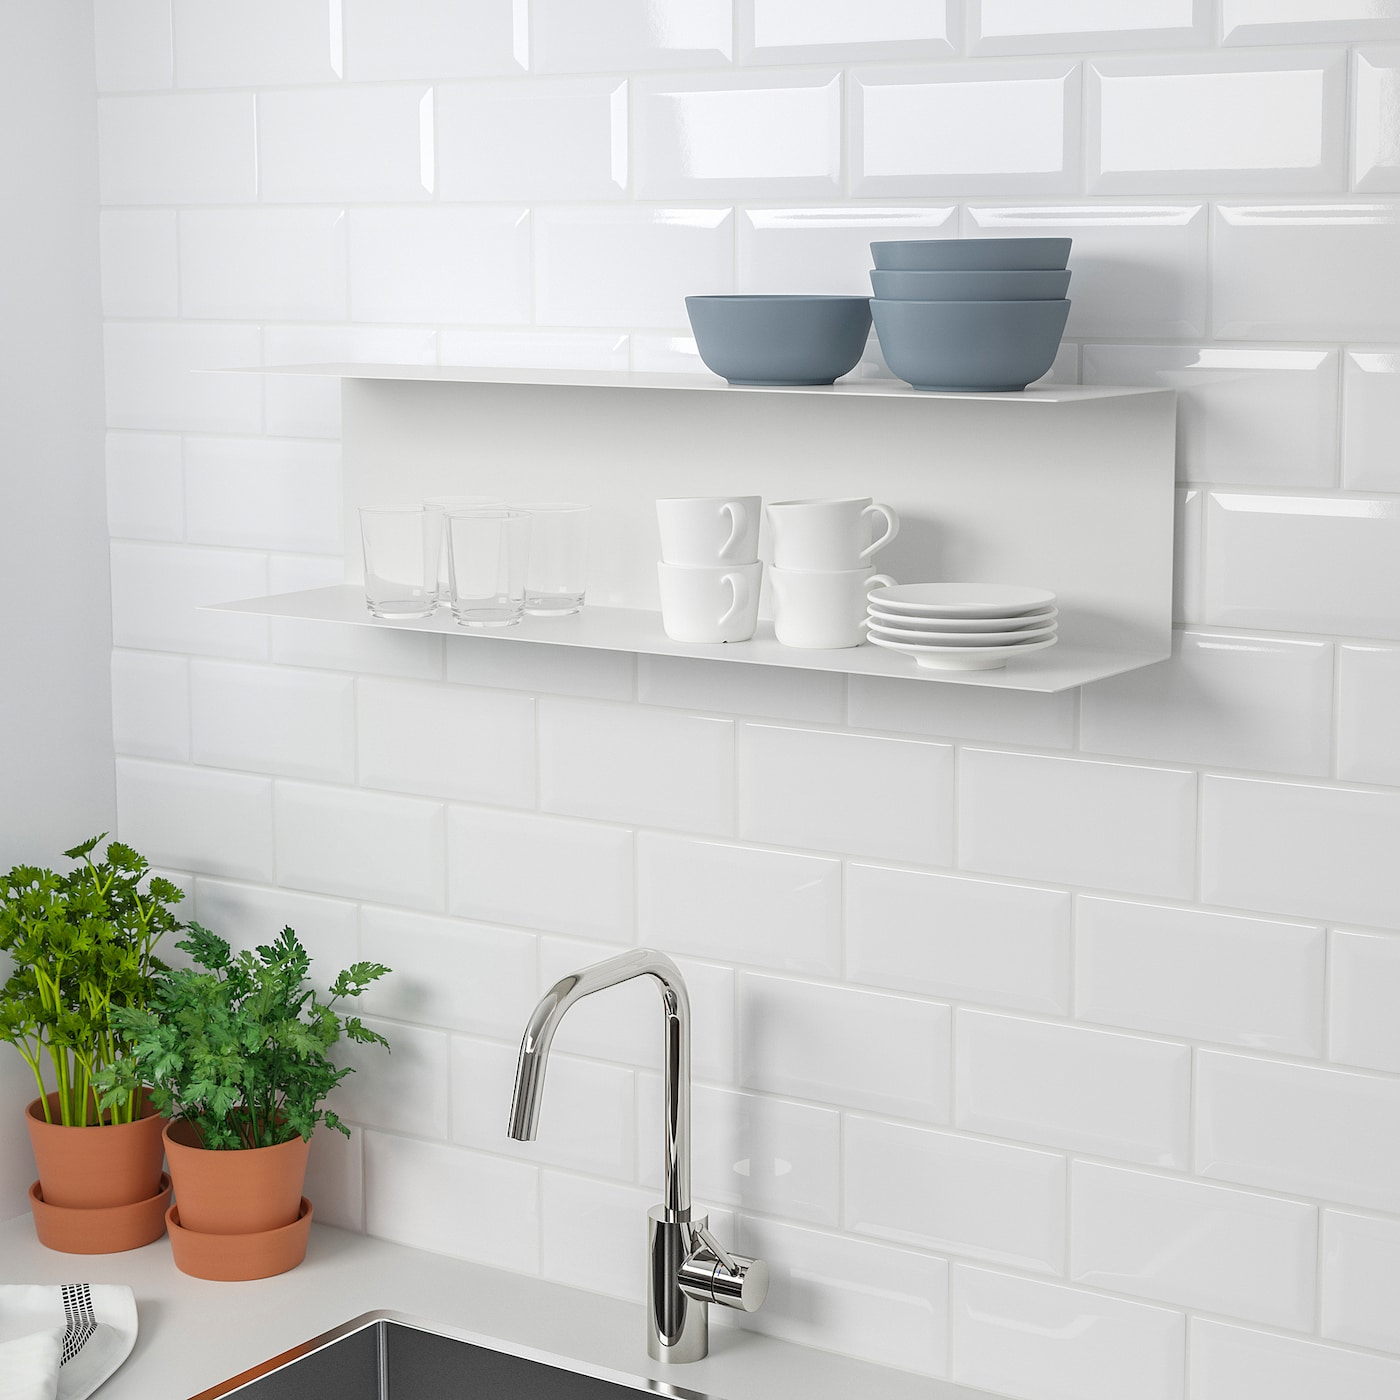 Wall To Wall Shelves botkyrka wall shelf - white 80x20 cm